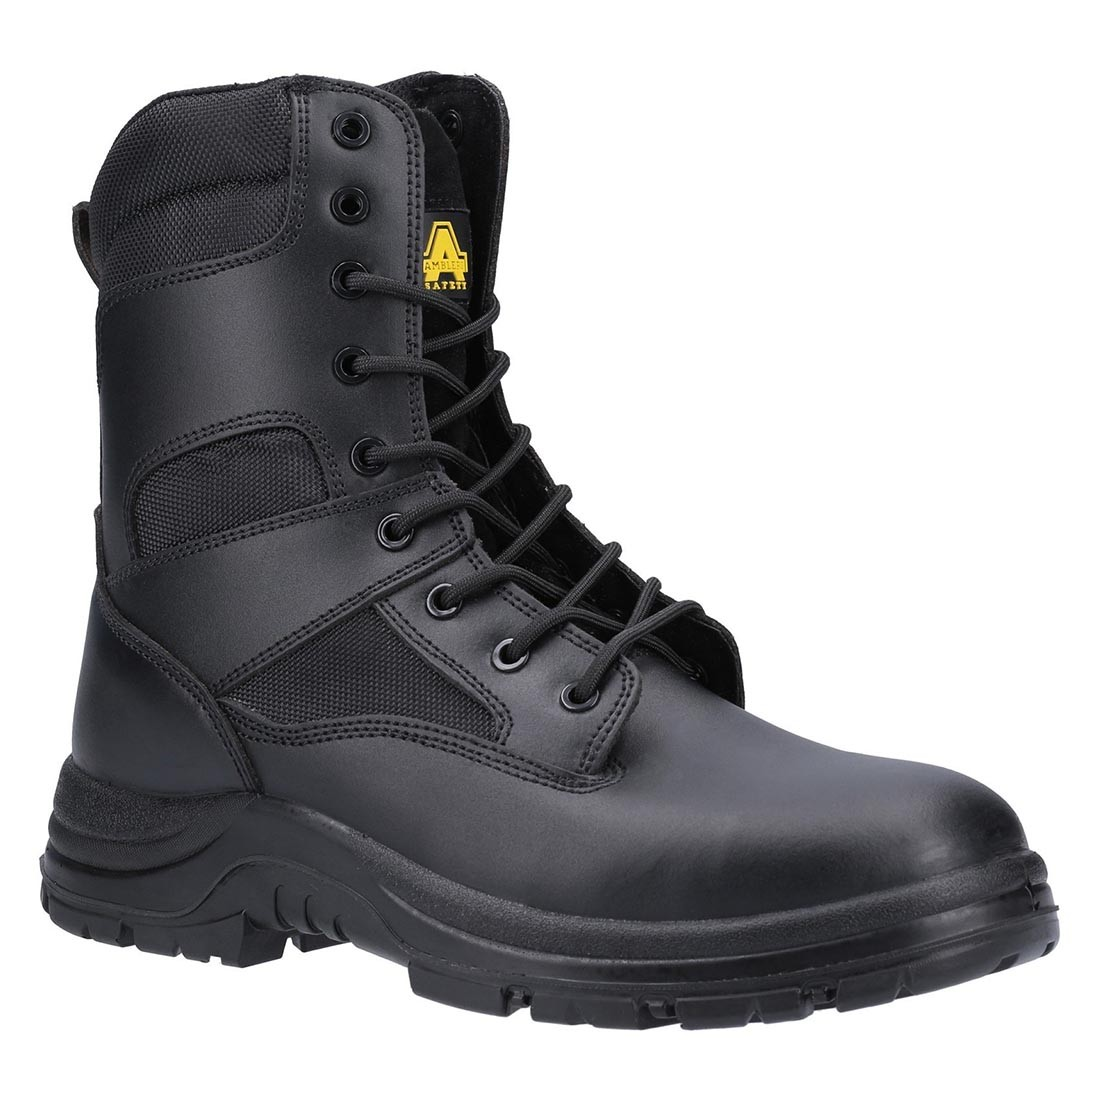 Amblers Safety FS009c Black Leather Metal Free Unisex Safety Boots